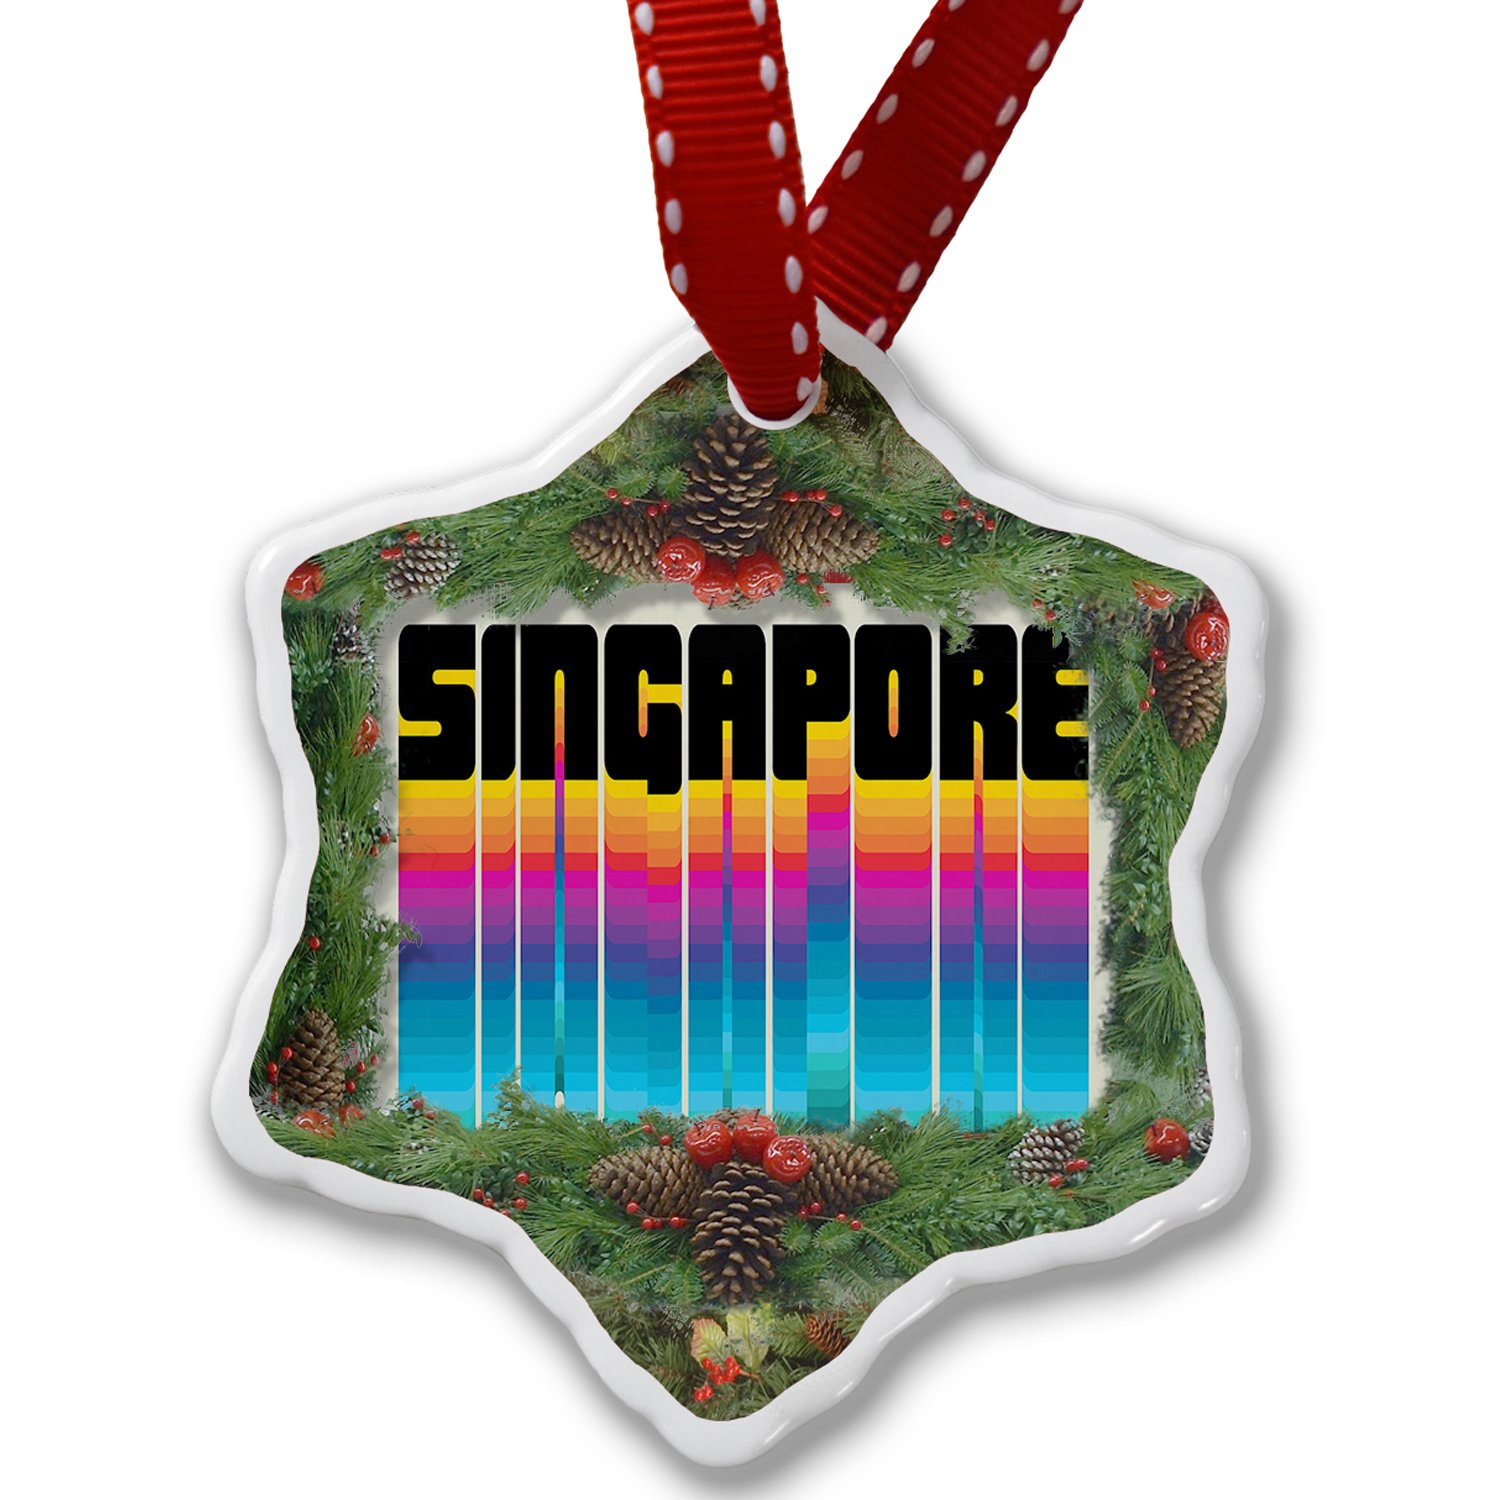 Christmas Ornament Retro Cites States Countries Singapore - Neonblond